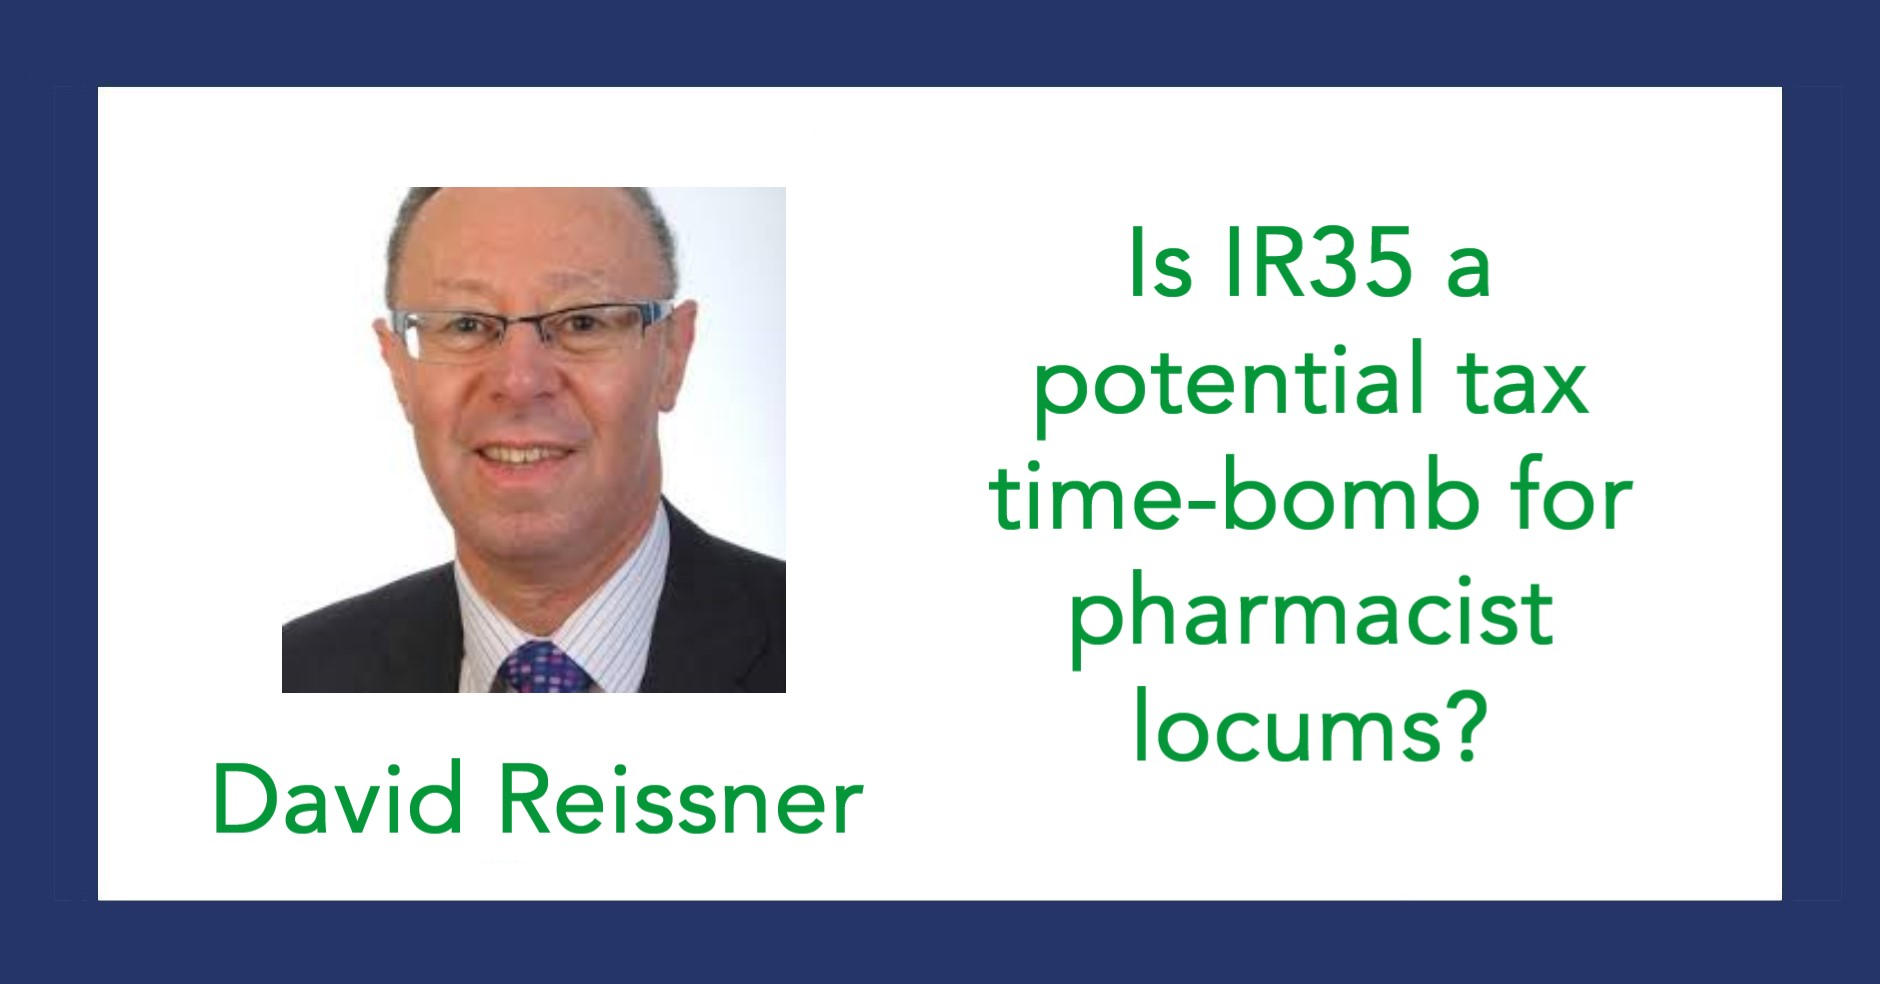 Is IR35 a potential tax time-bomb for pharmacist locums?